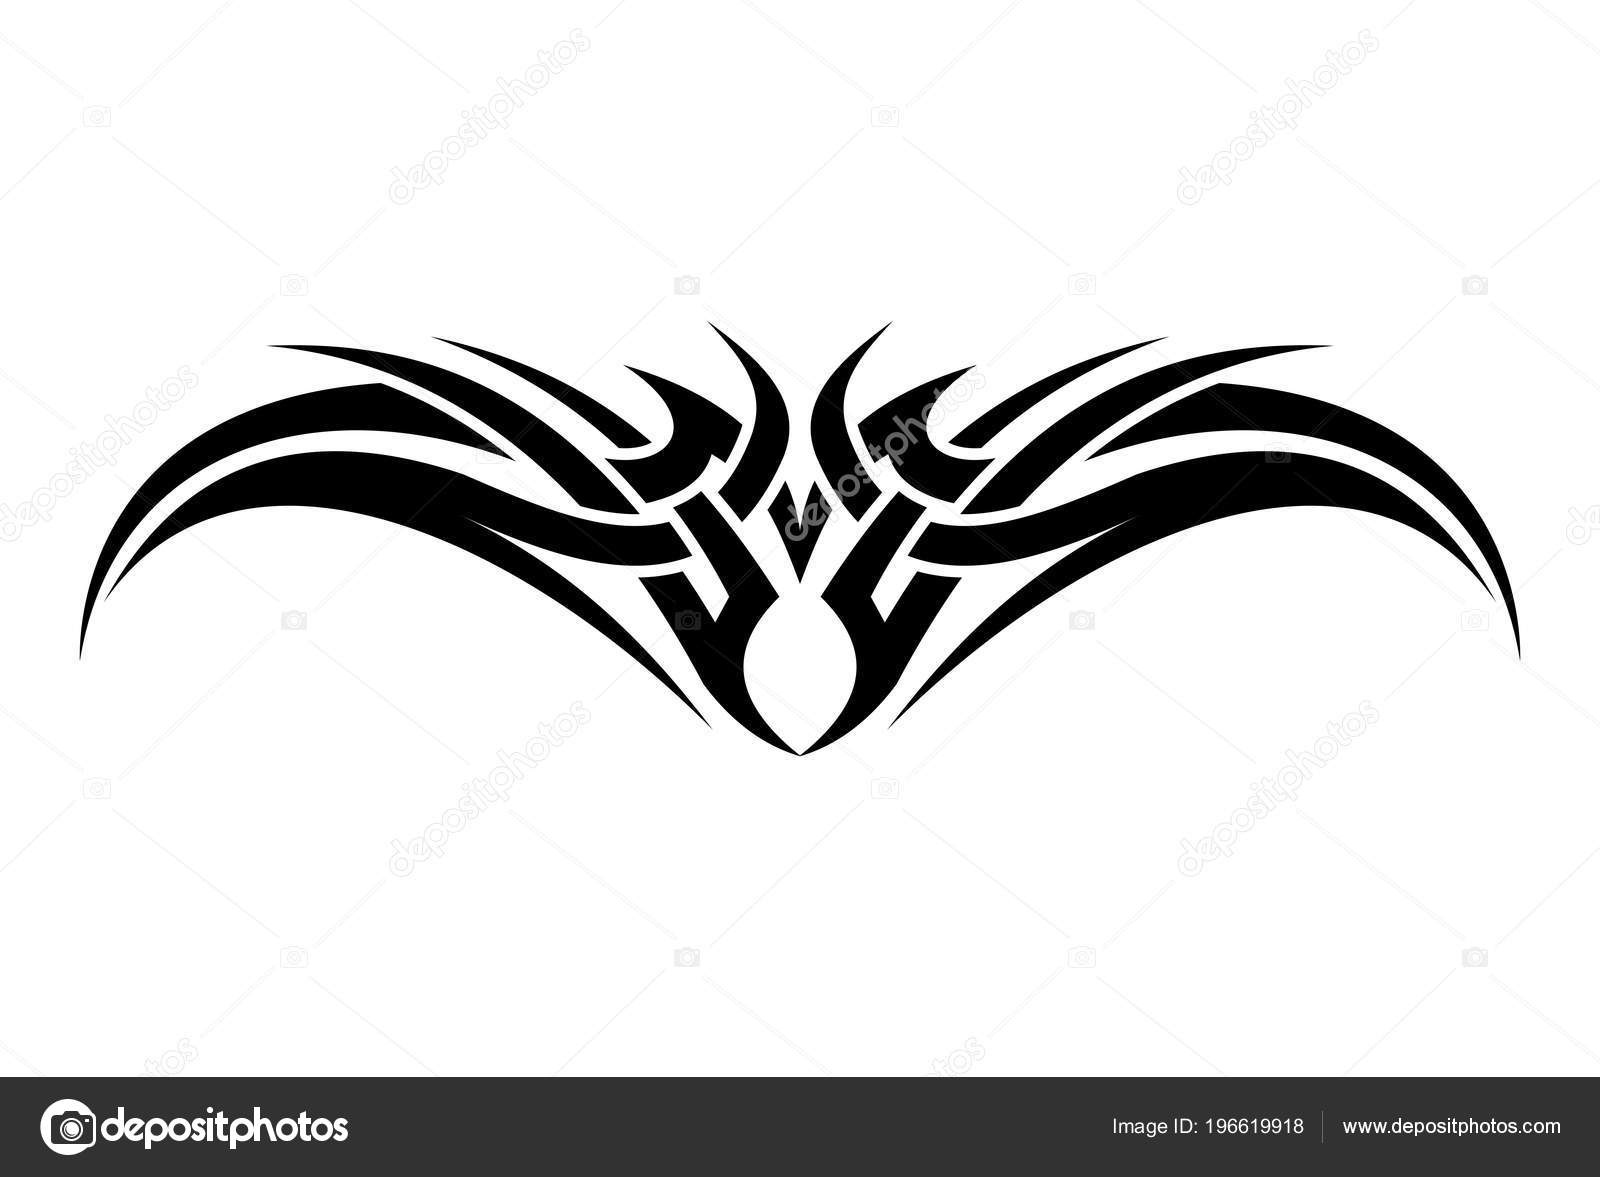 Stock Illustration Volleyball Tribal Abstract Vector: Illustration Vectorielle Arc Abstrait Tribal